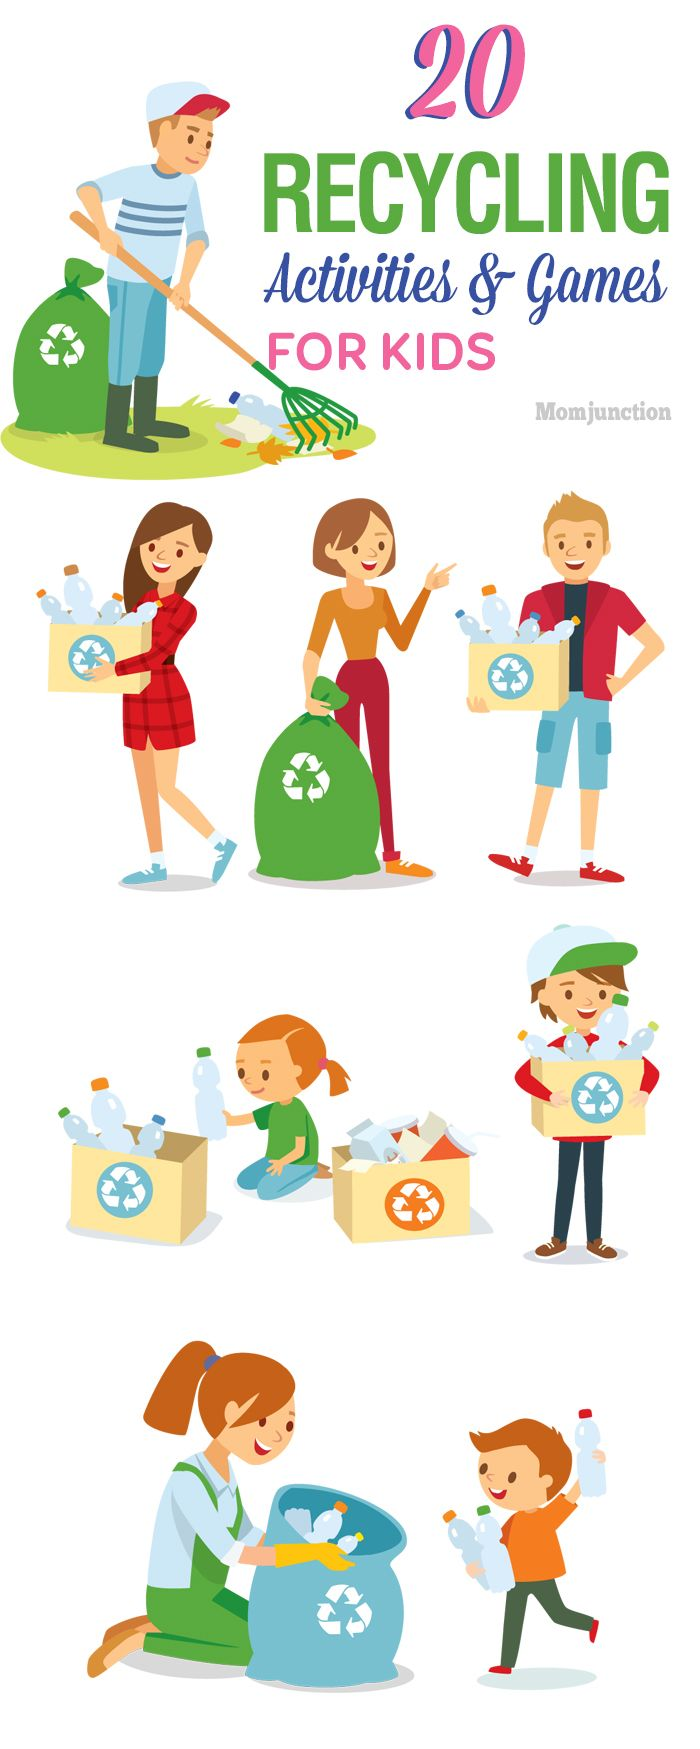 Searching for some unique recycling activities for kids? Yes, here are a few fun recycling activities and games for your little environmentalist. Just read on!